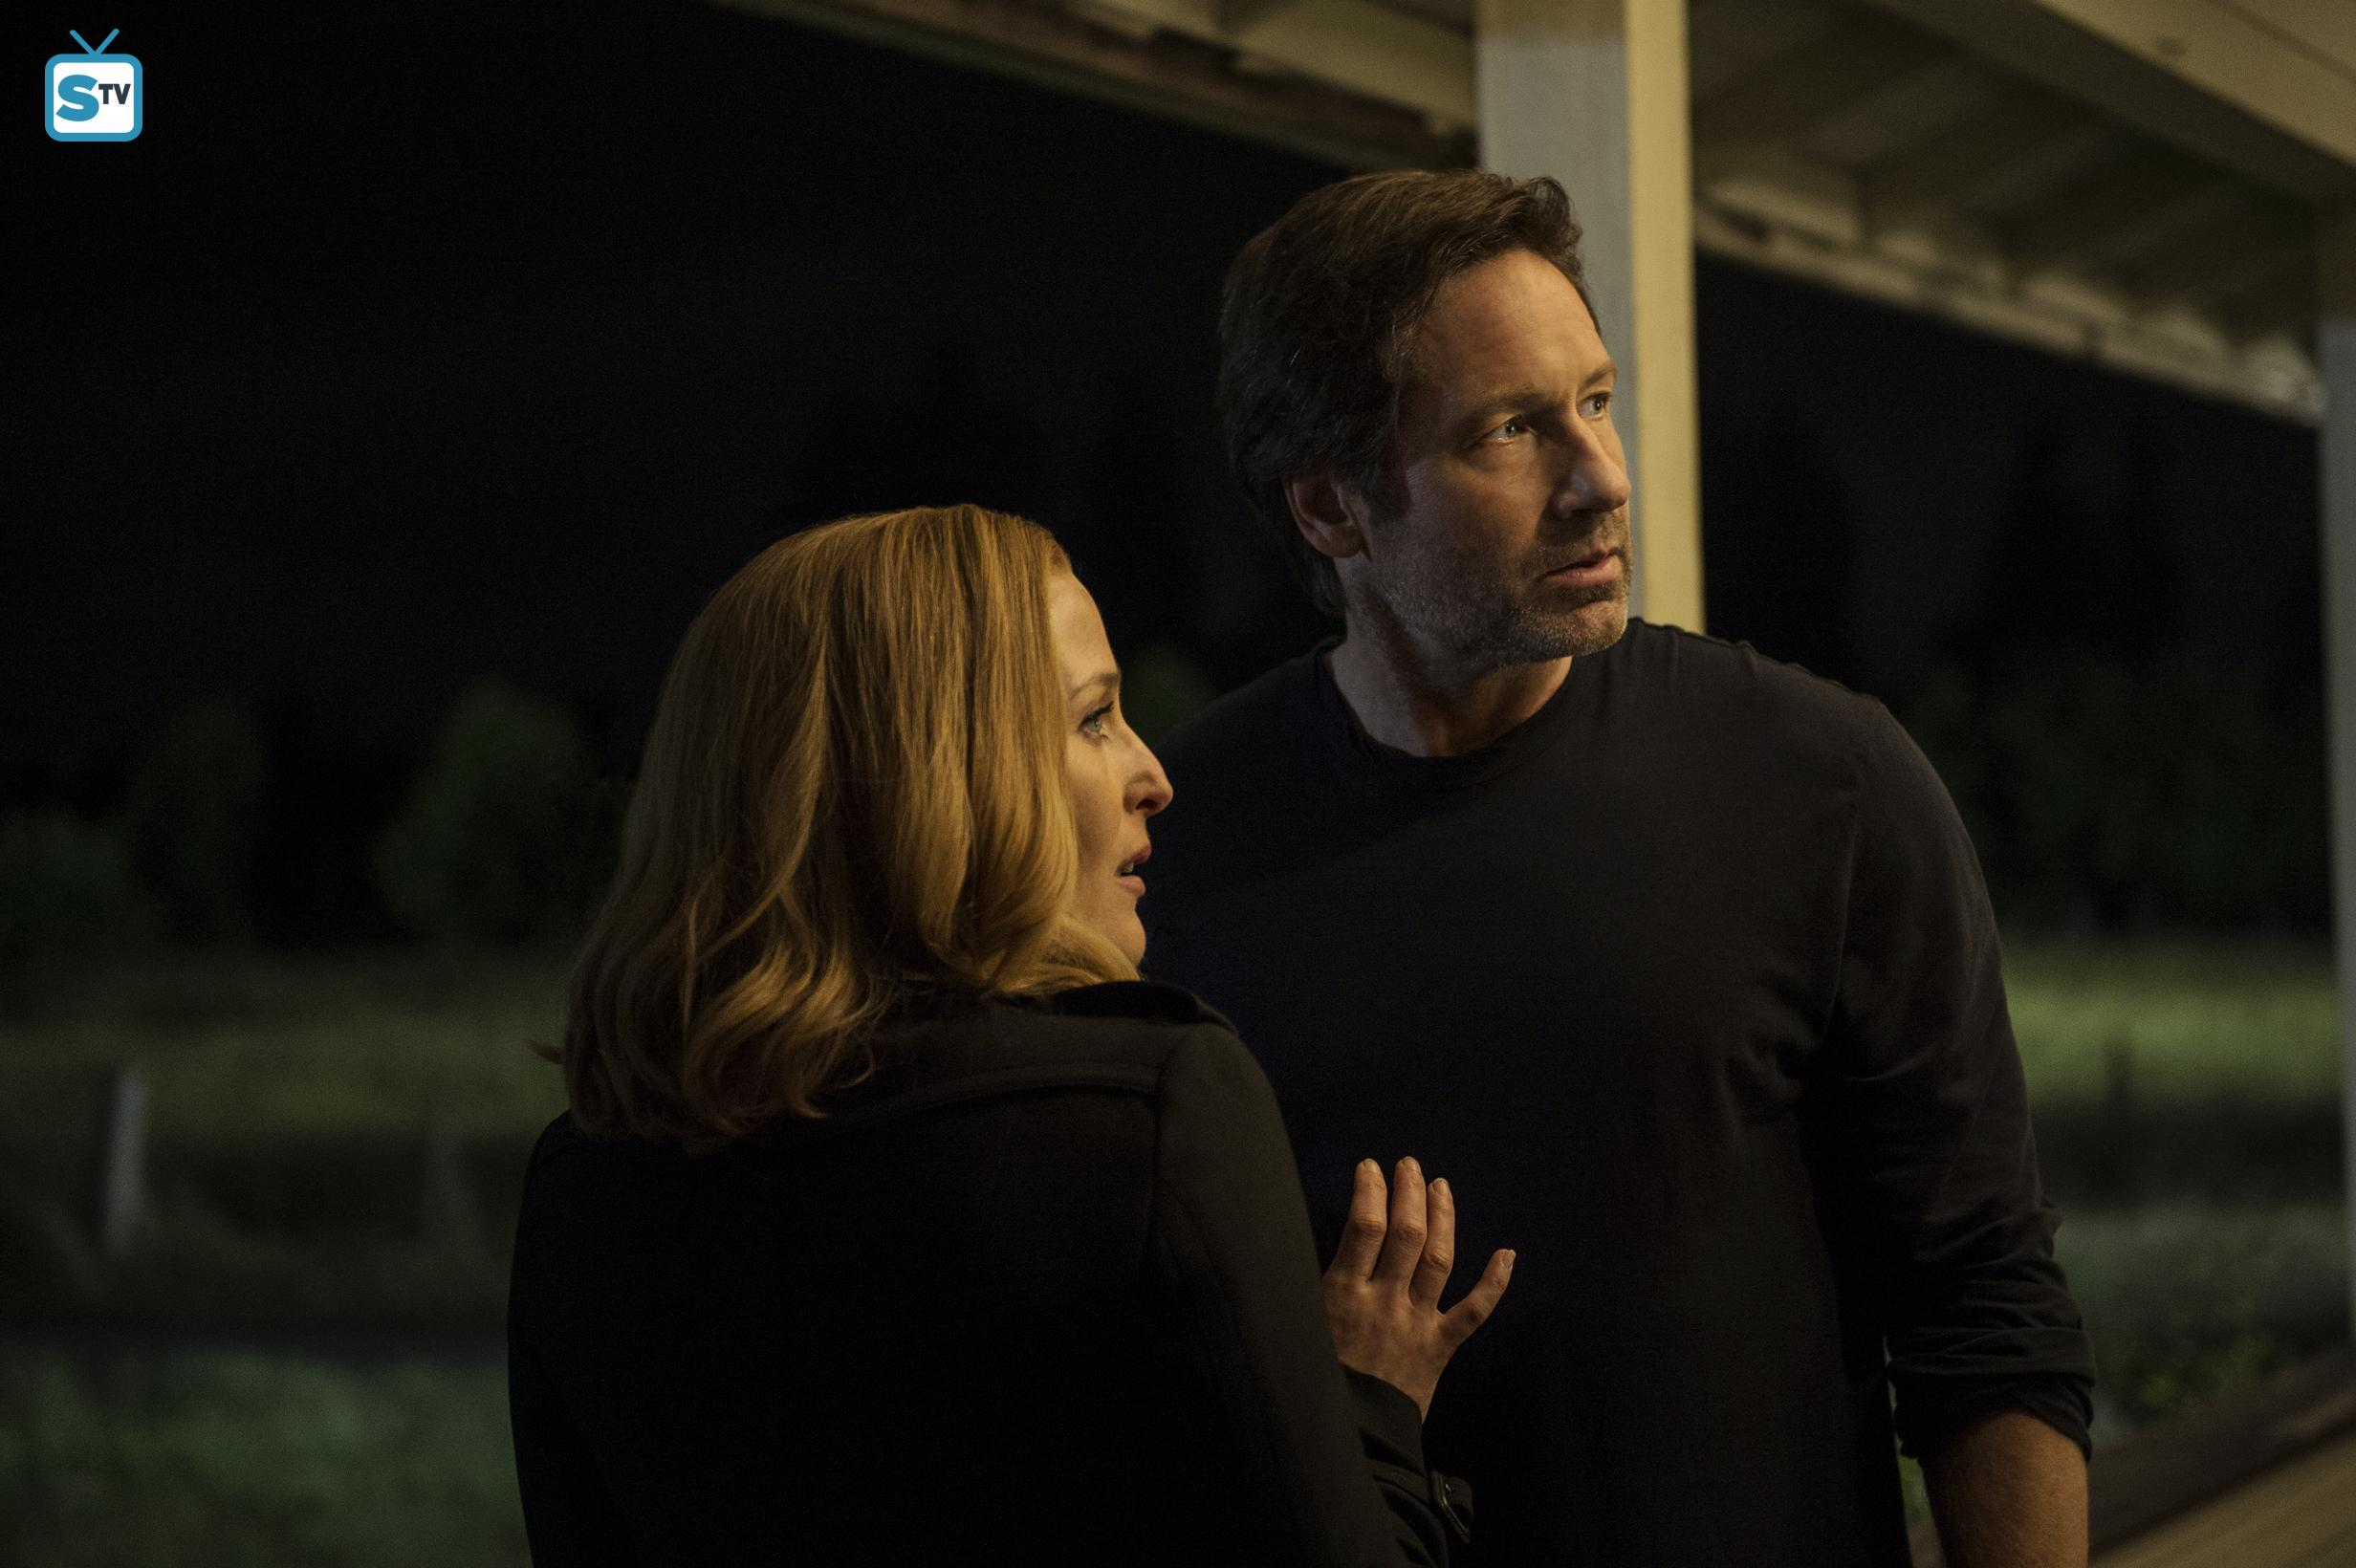 X-Files_1001_060815_sc28_0013DJ1_hires1_FULL